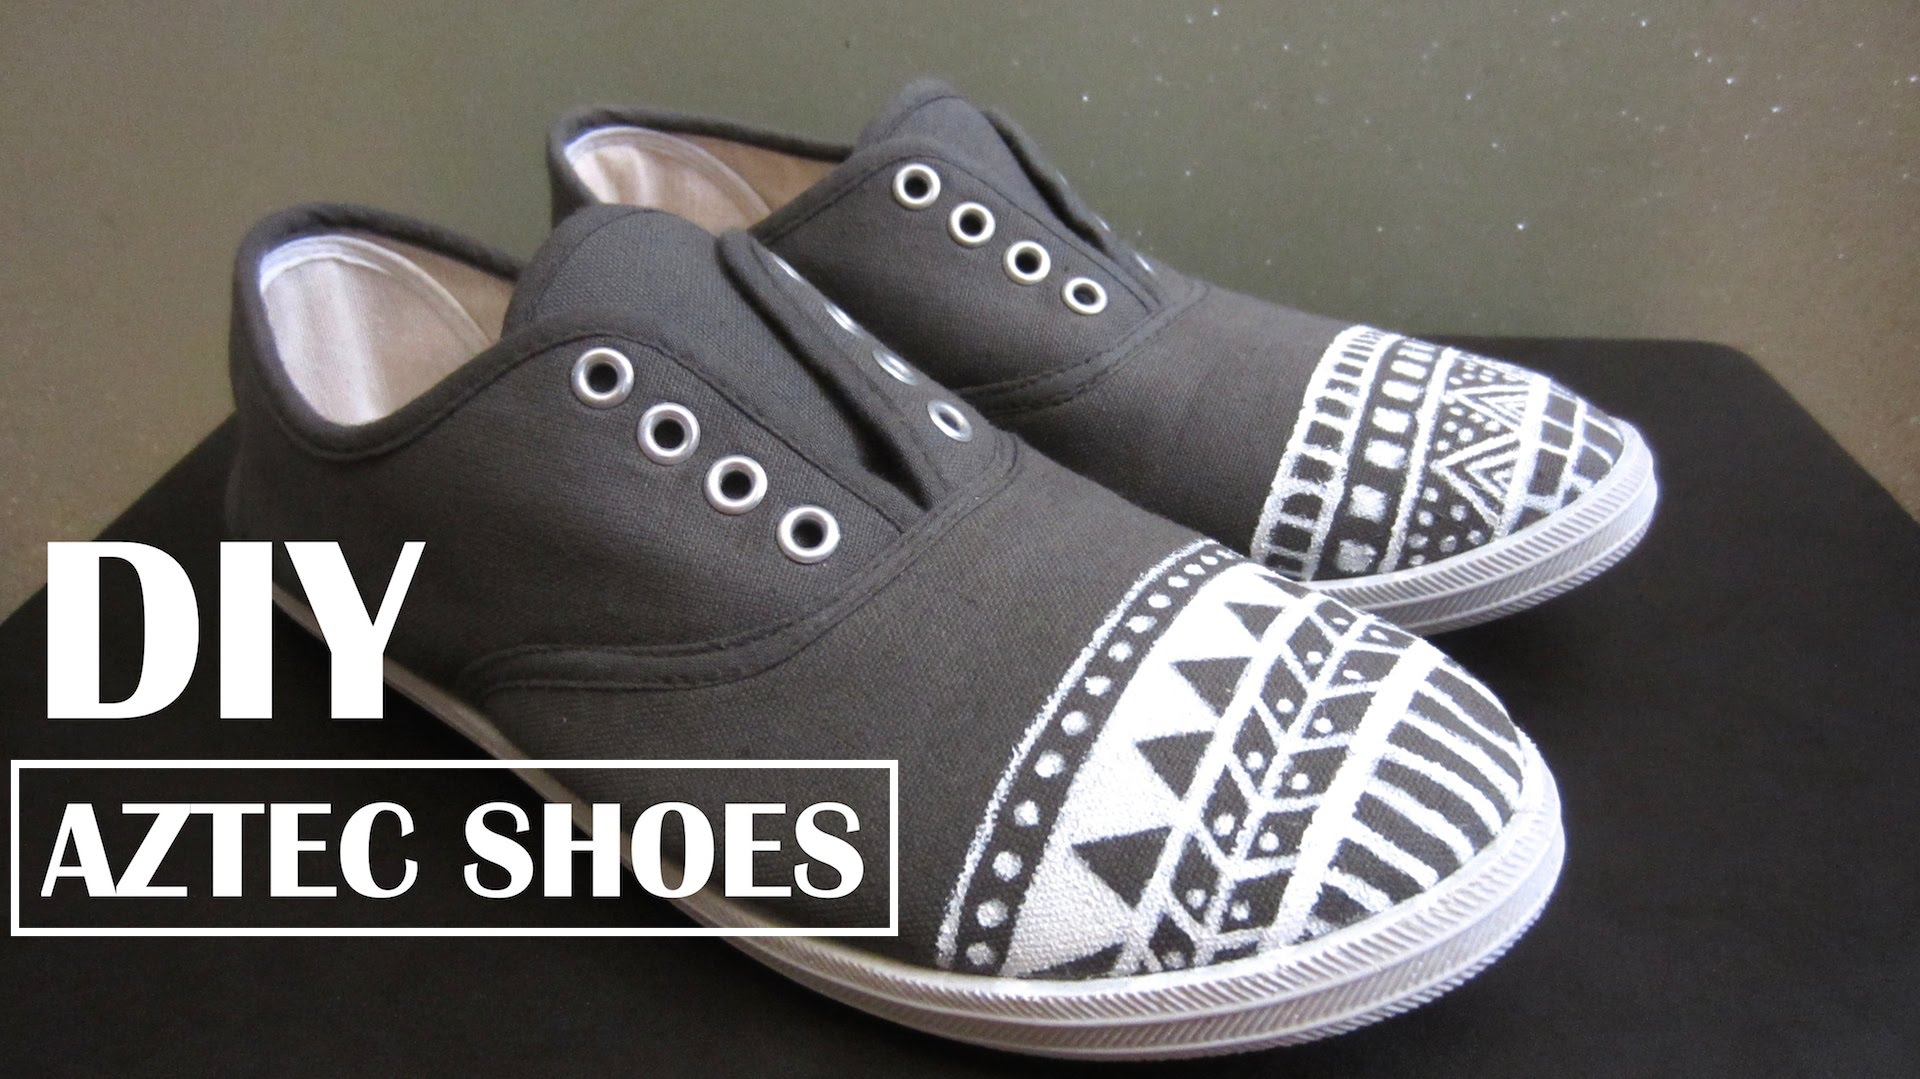 Drawn shoe tribal design Customize Aztec/Tribal How with with